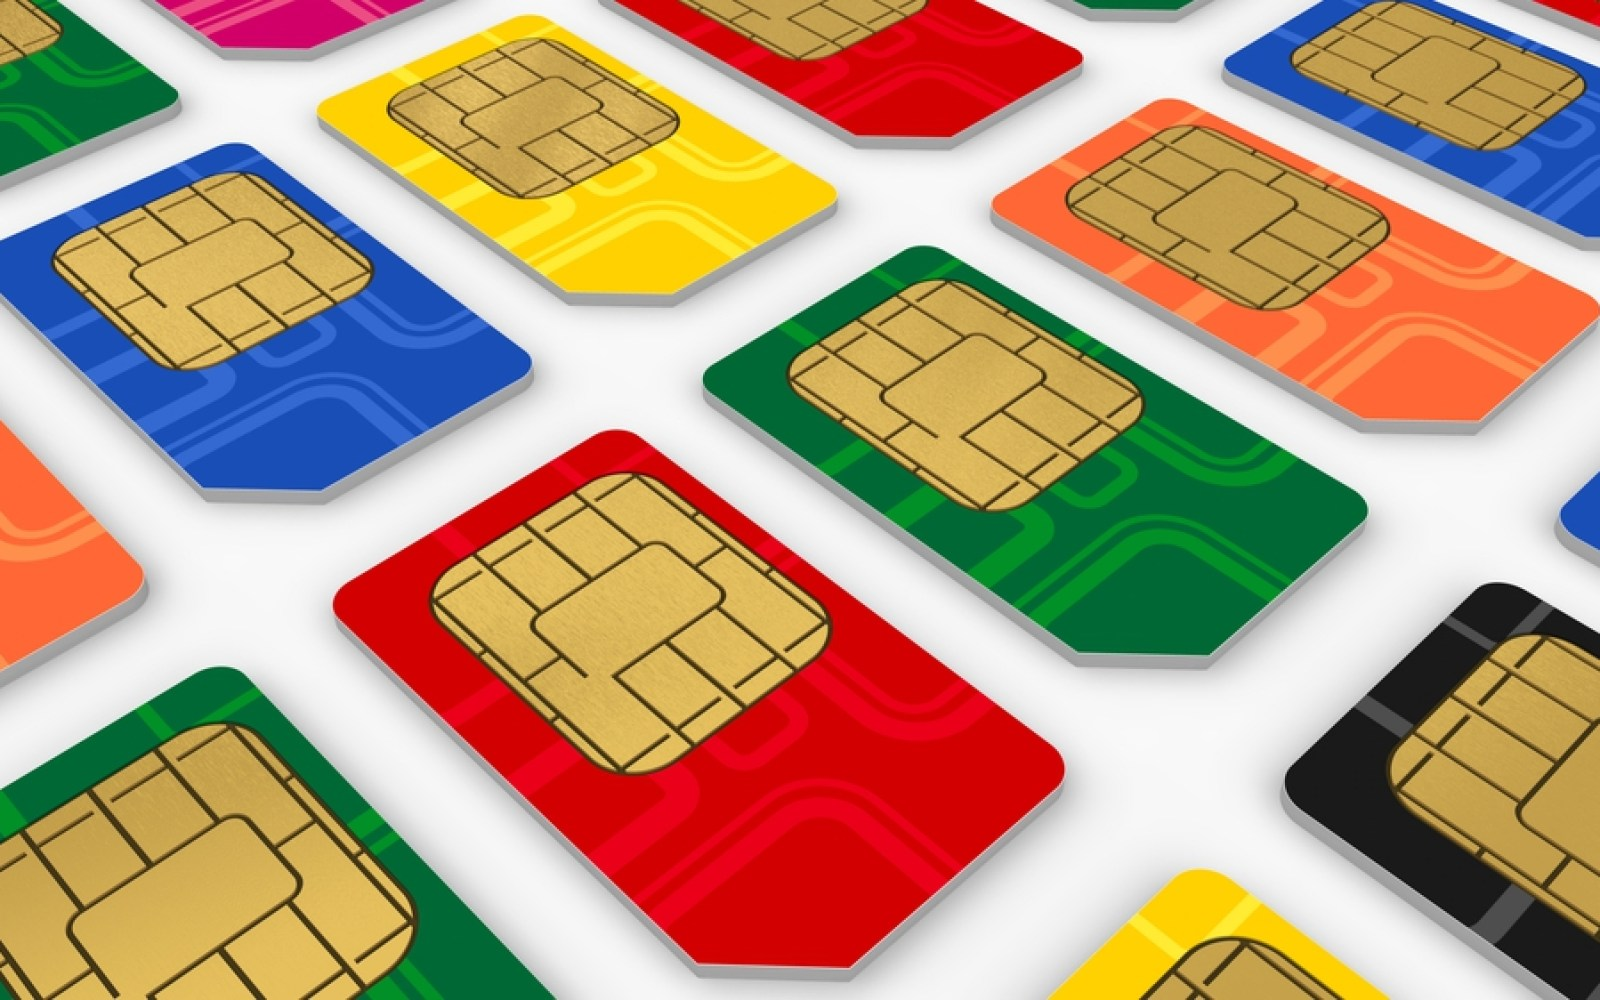 Samsung reportedly in talks with cell providers to launch new 'e-SIM' cards